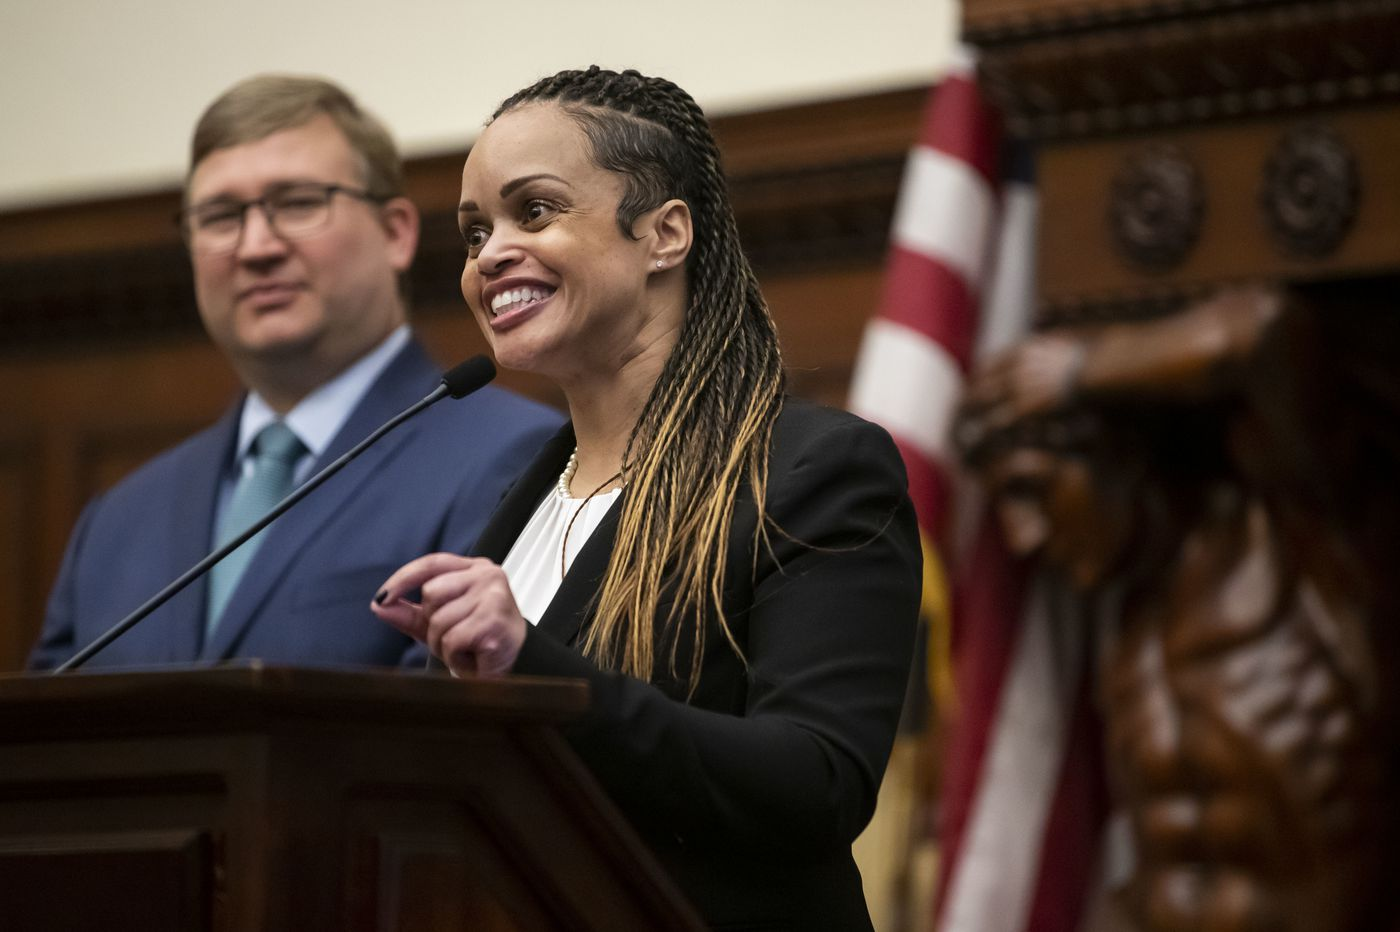 Philadelphia's new police commissioner is Danielle Outlaw of Portland, Ore.